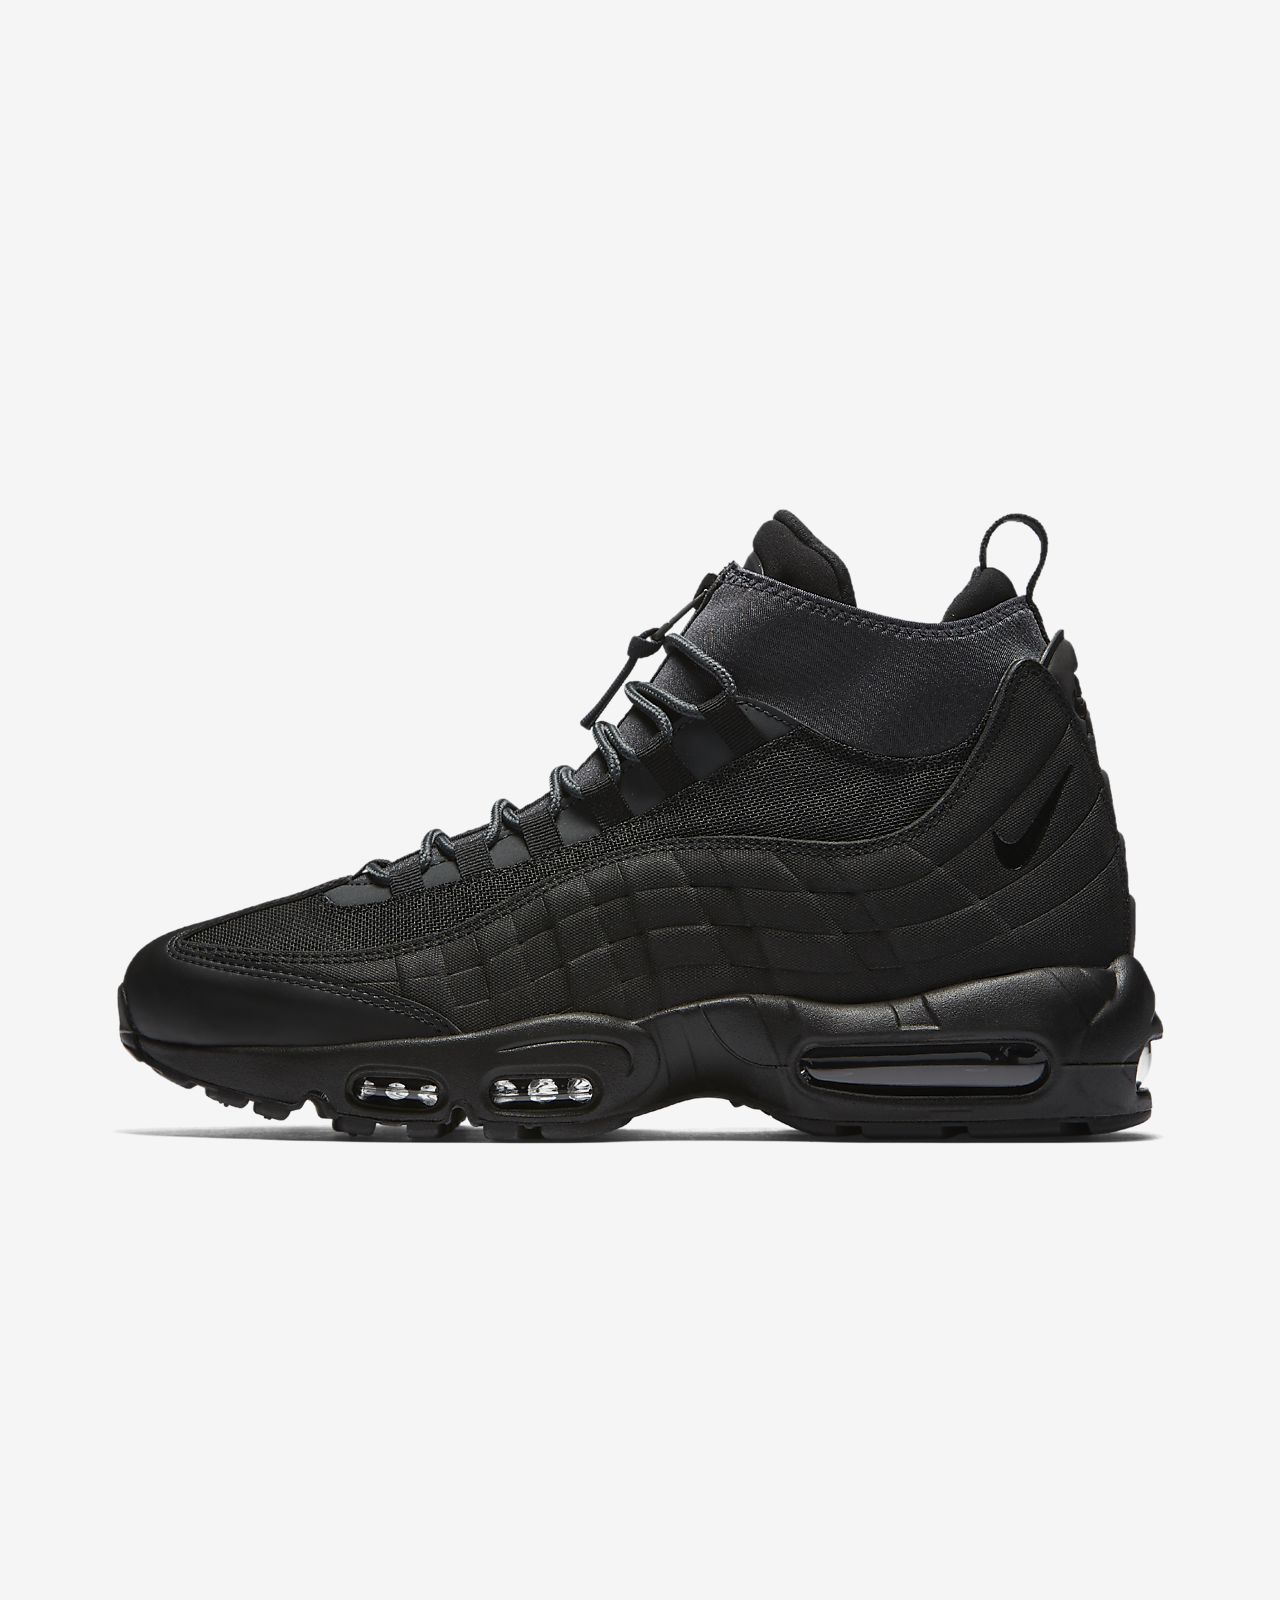 new product 43c72 b8769 Nike Air Max 95 SneakerBoot Men's Boot